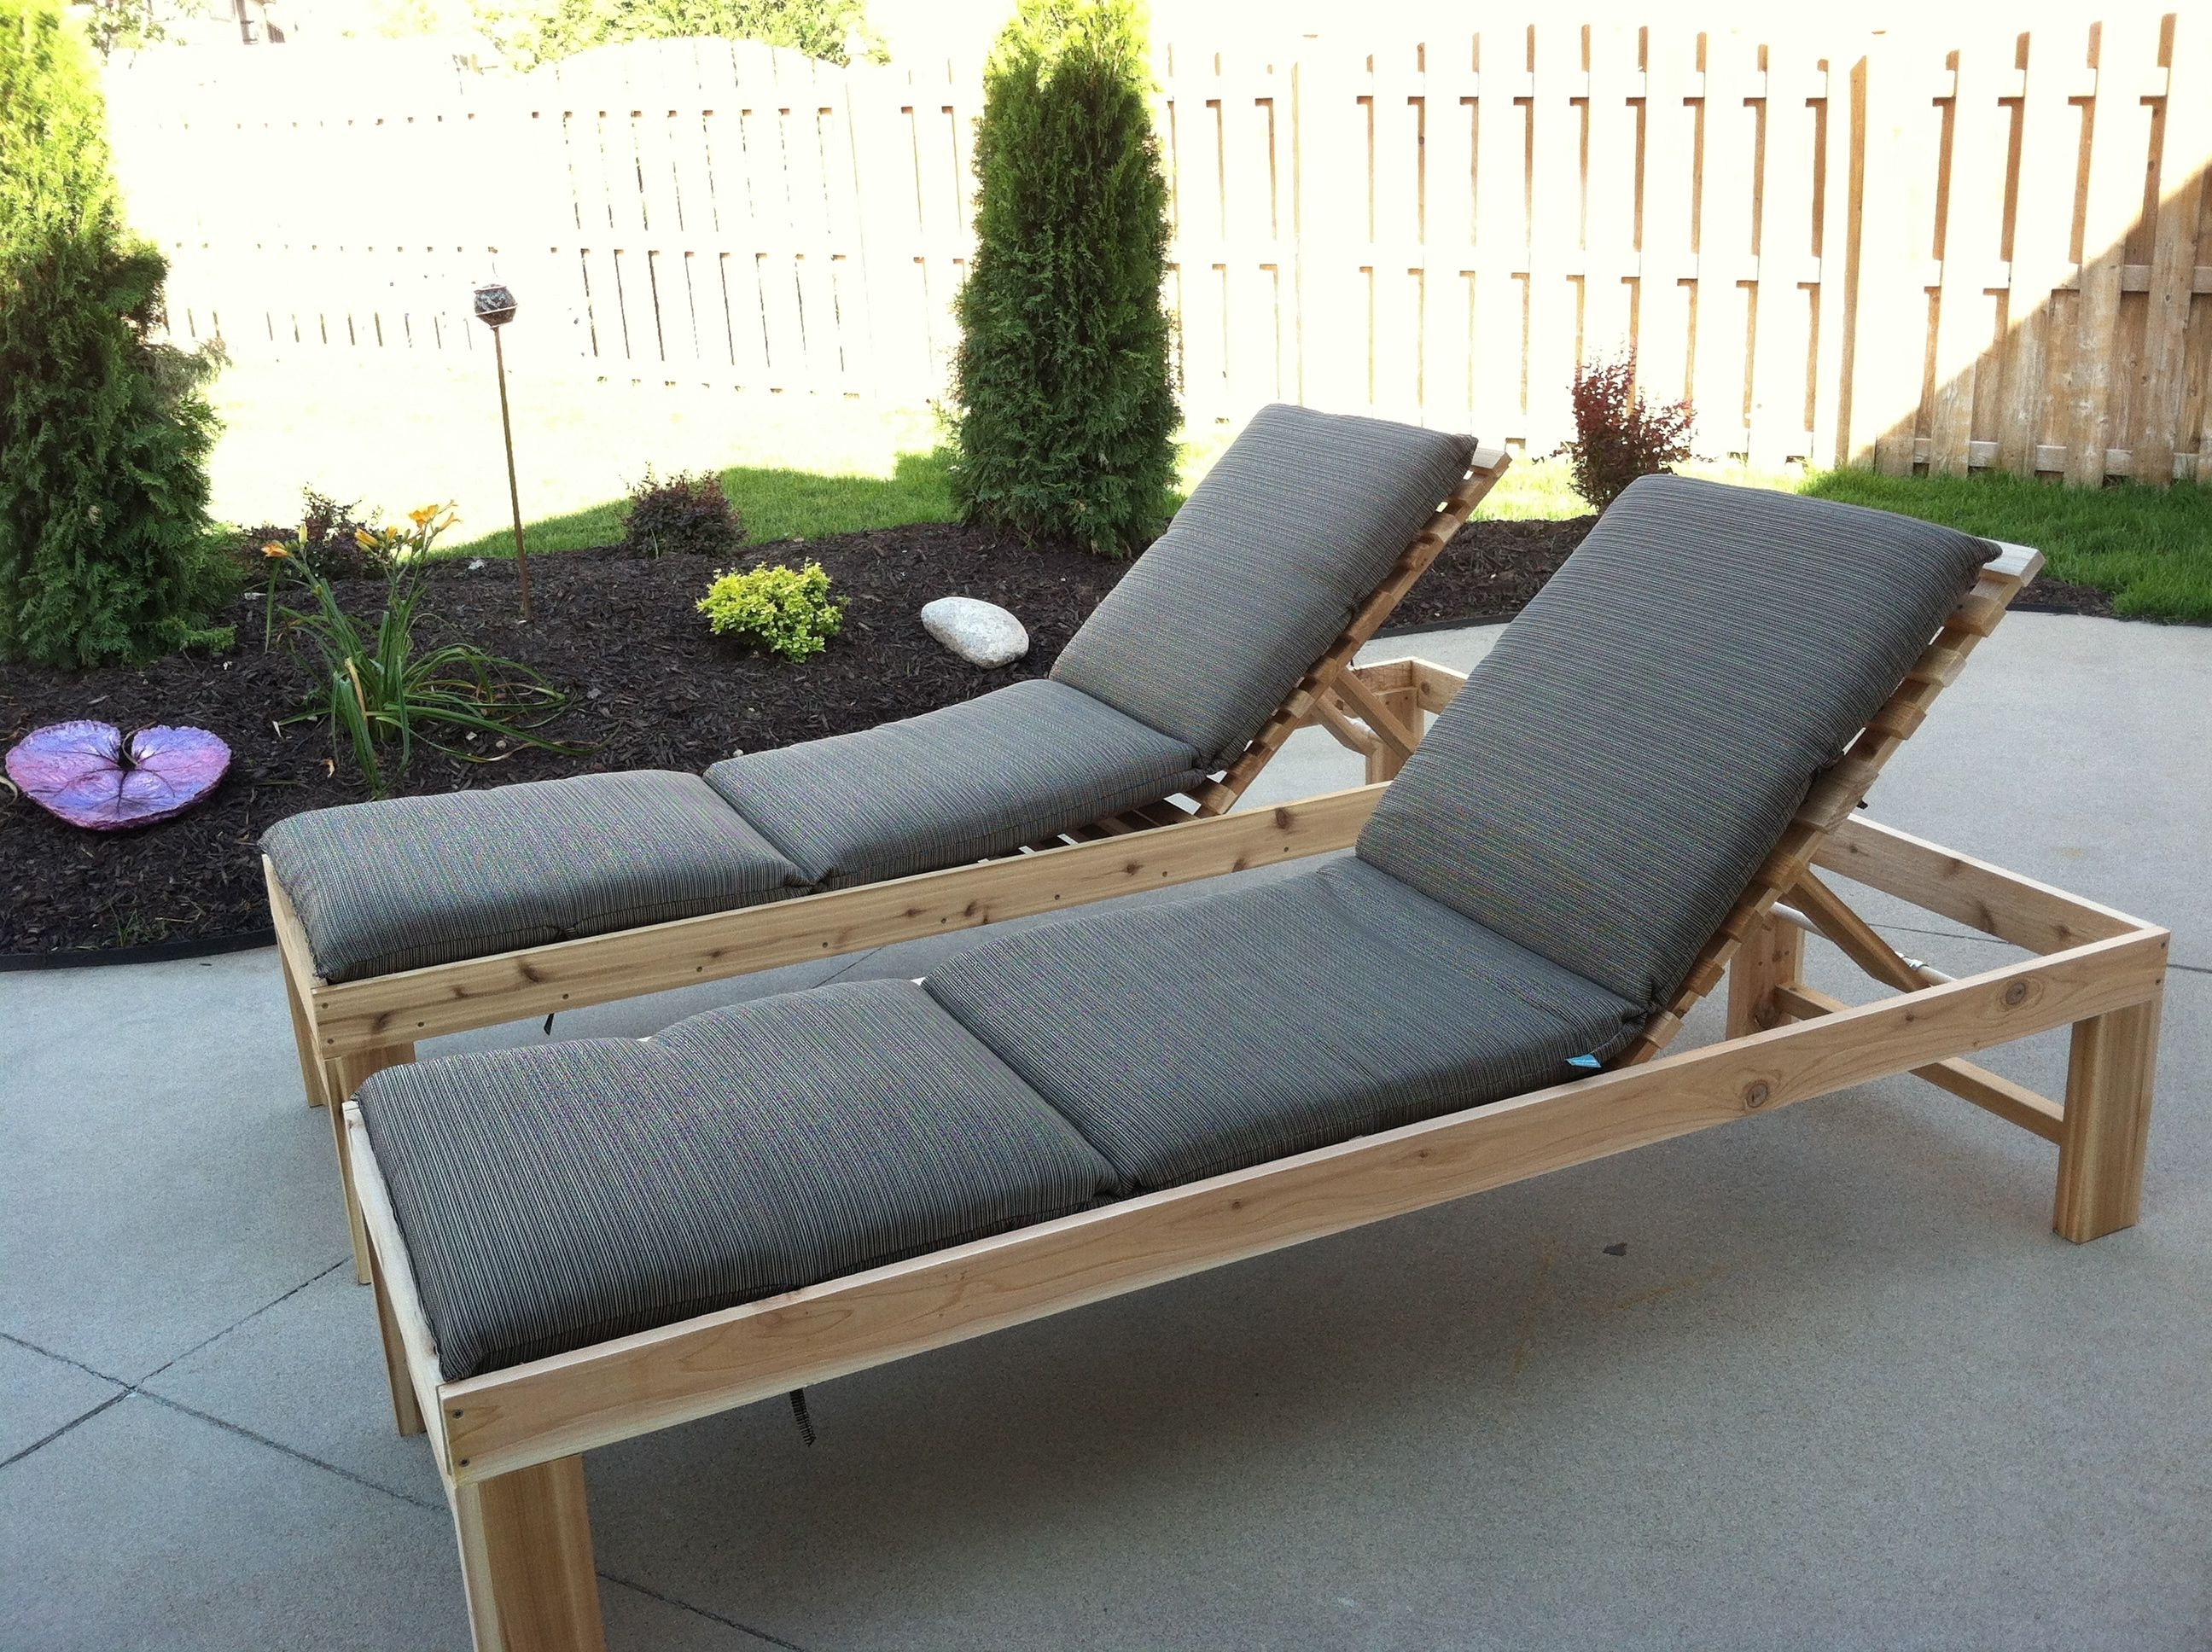 Outdoor: Chic Chaise Lounge Outdoor For Outdoor Furniture Ideas With Regard To Well Liked Modern Outdoor Chaise Lounge Chairs (View 6 of 15)